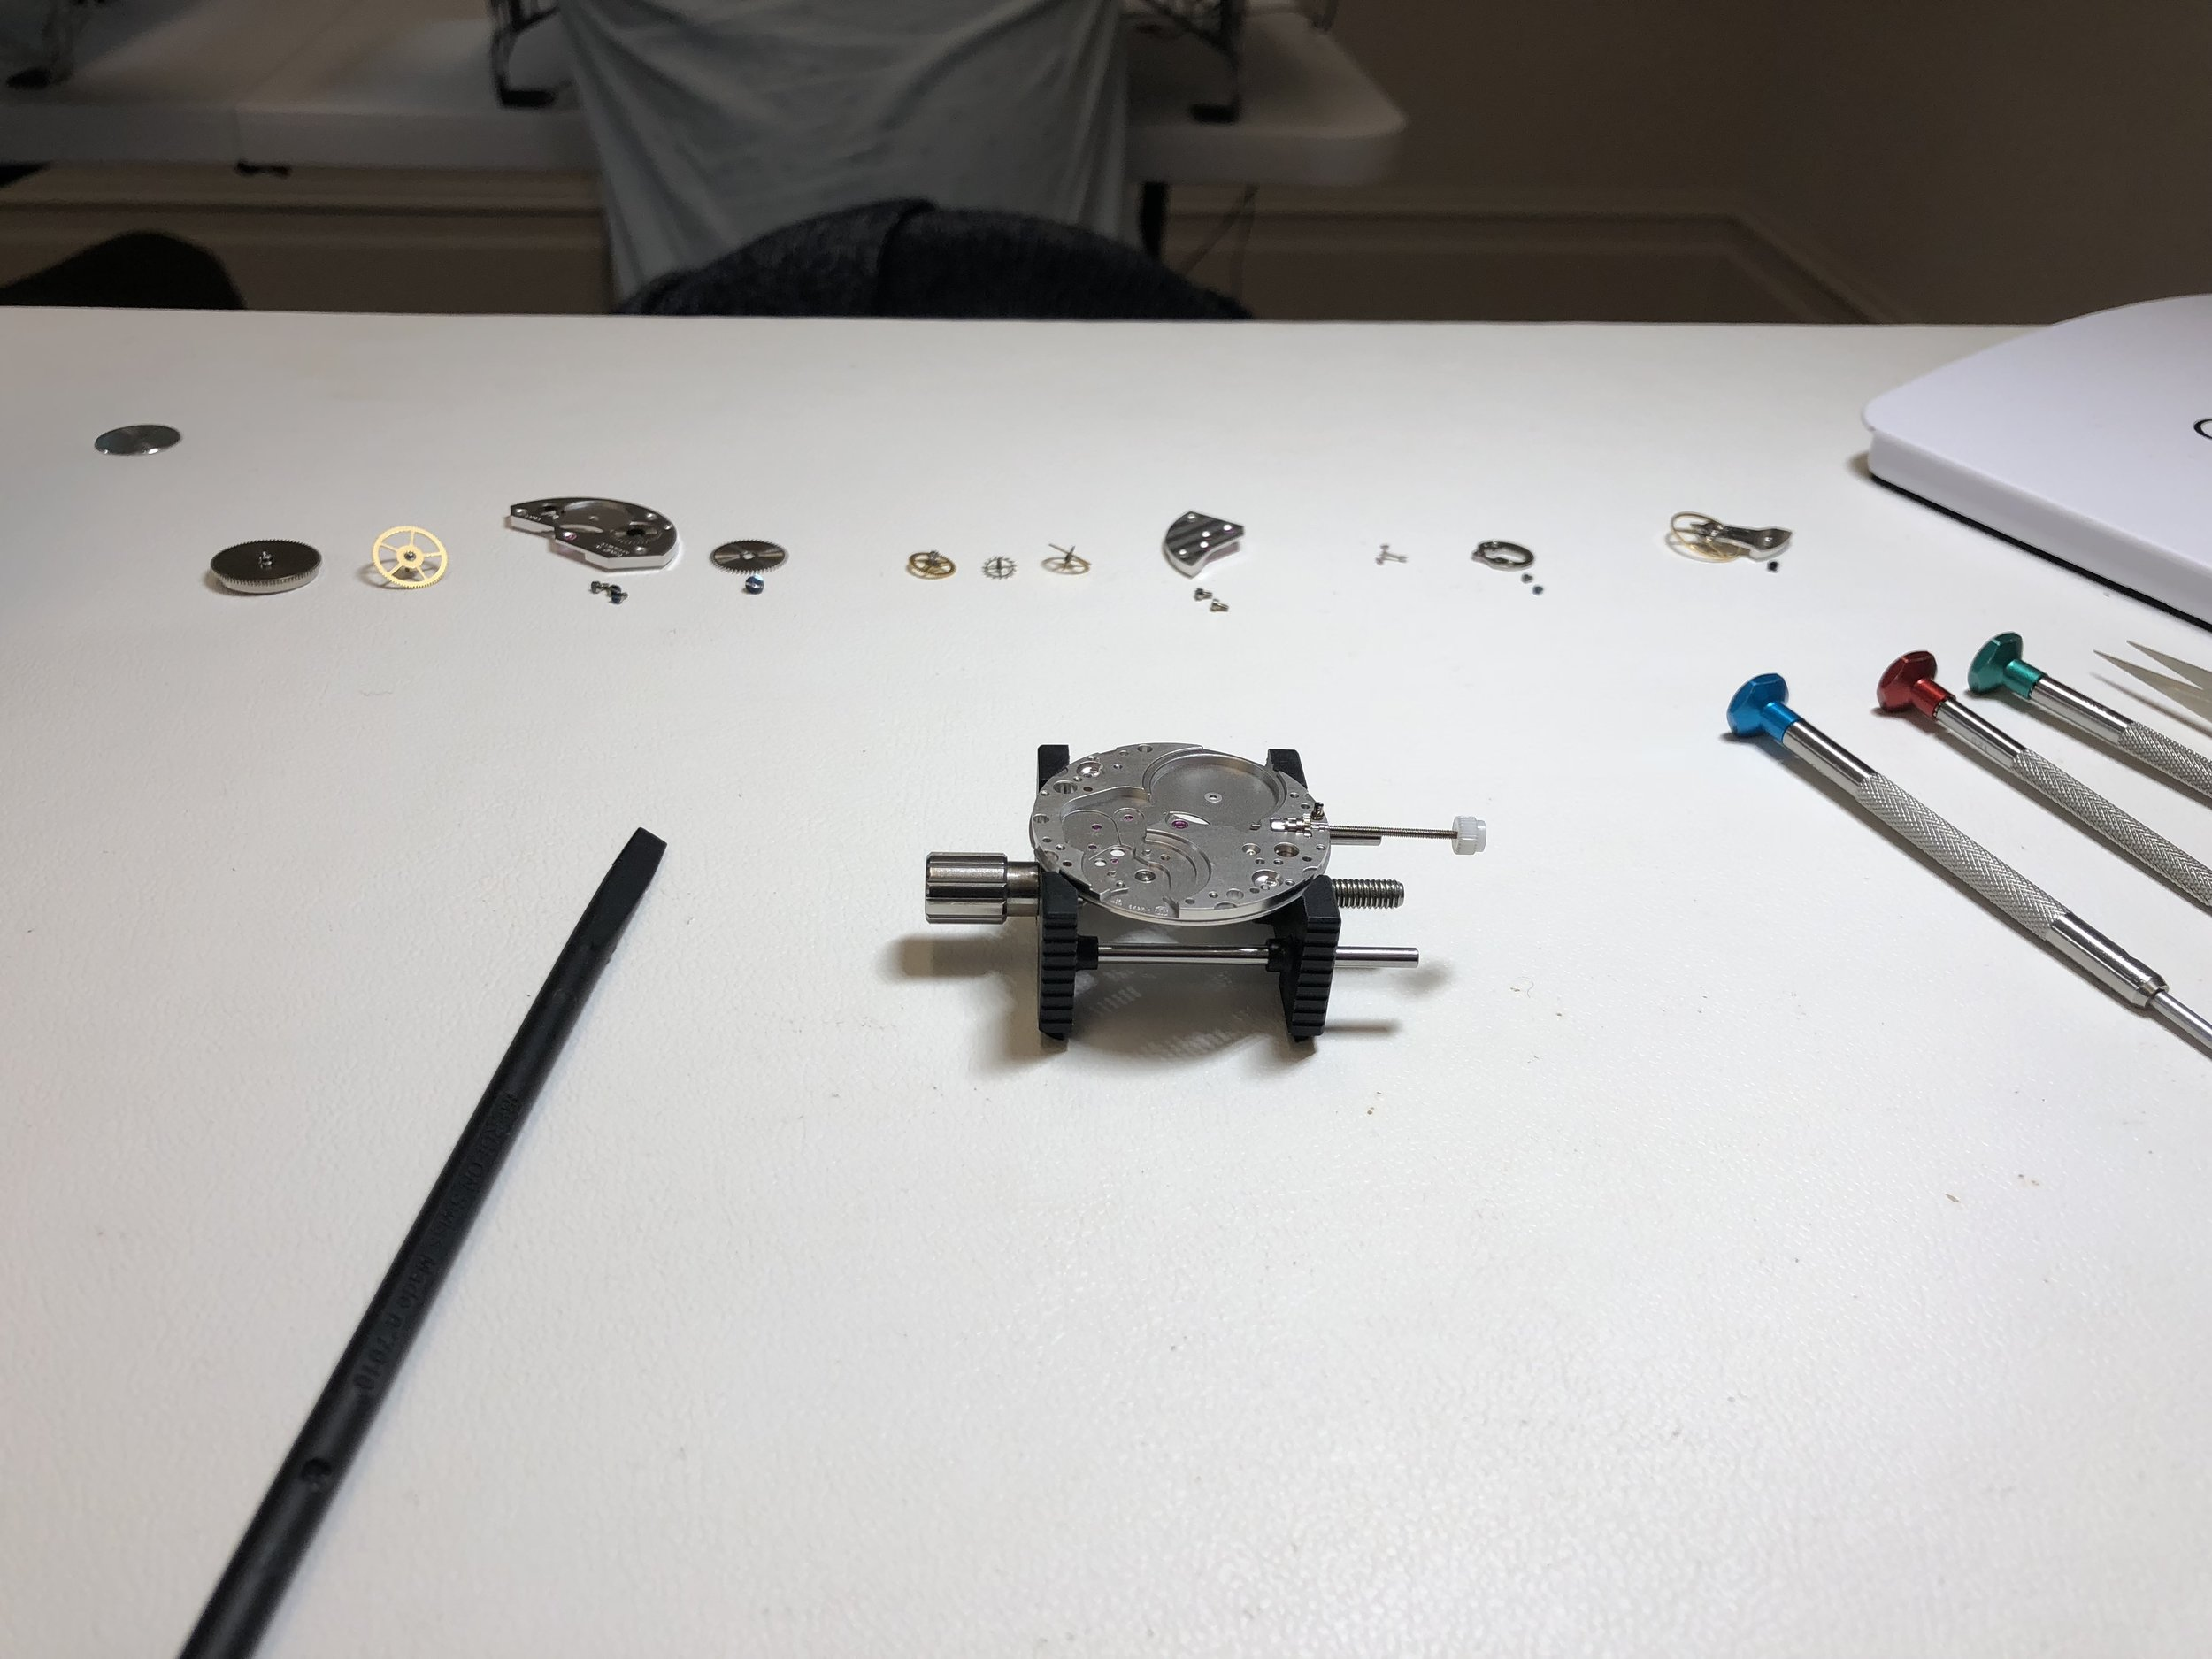 Deconstructed and ready for re-assembly